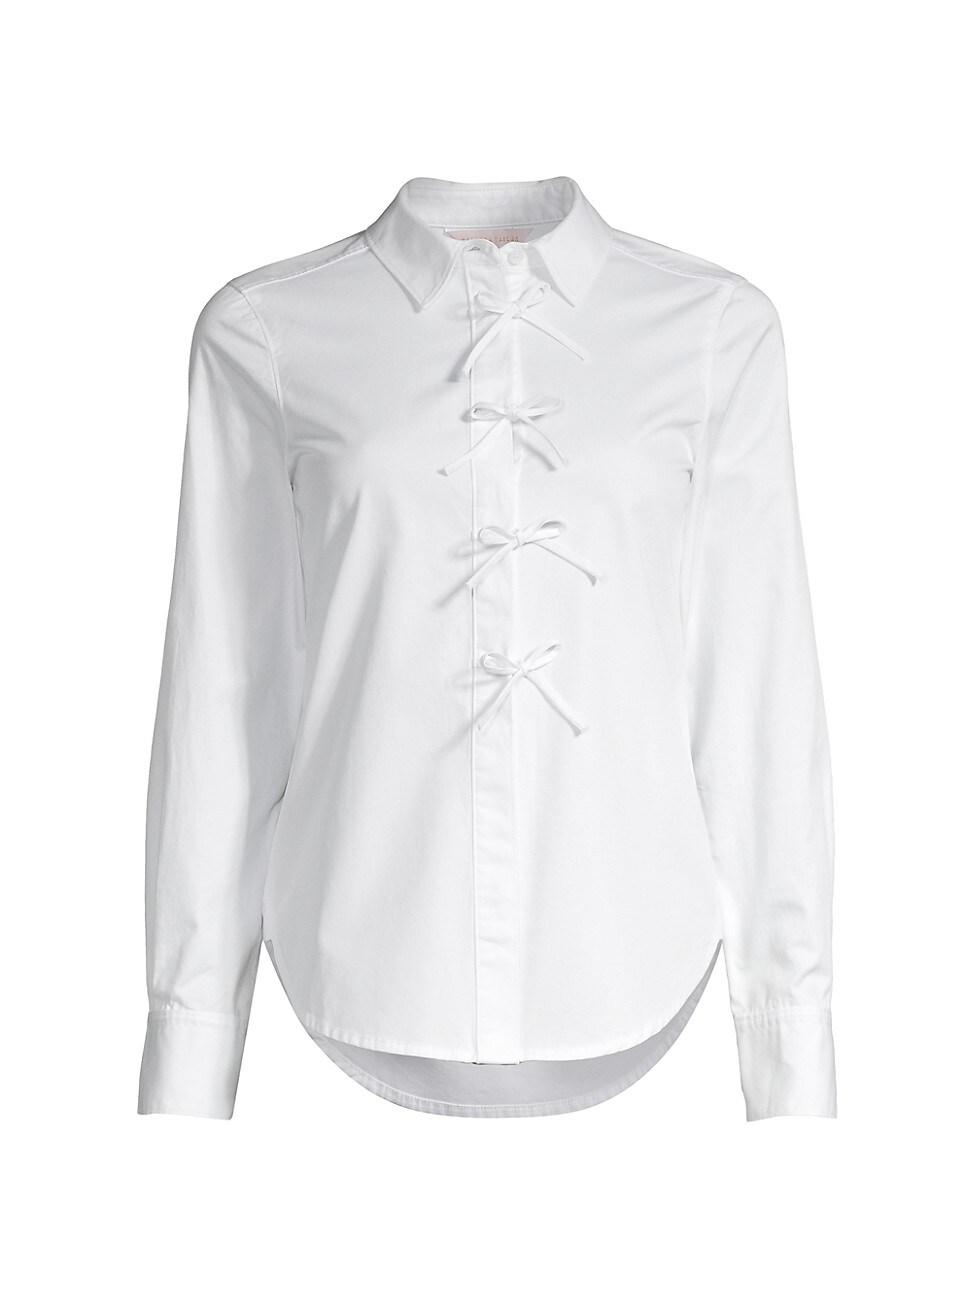 Rebecca Taylor Cottons WOMEN'S BOW-FRONT COTTON TWILL BUTTON-UP SHIRT